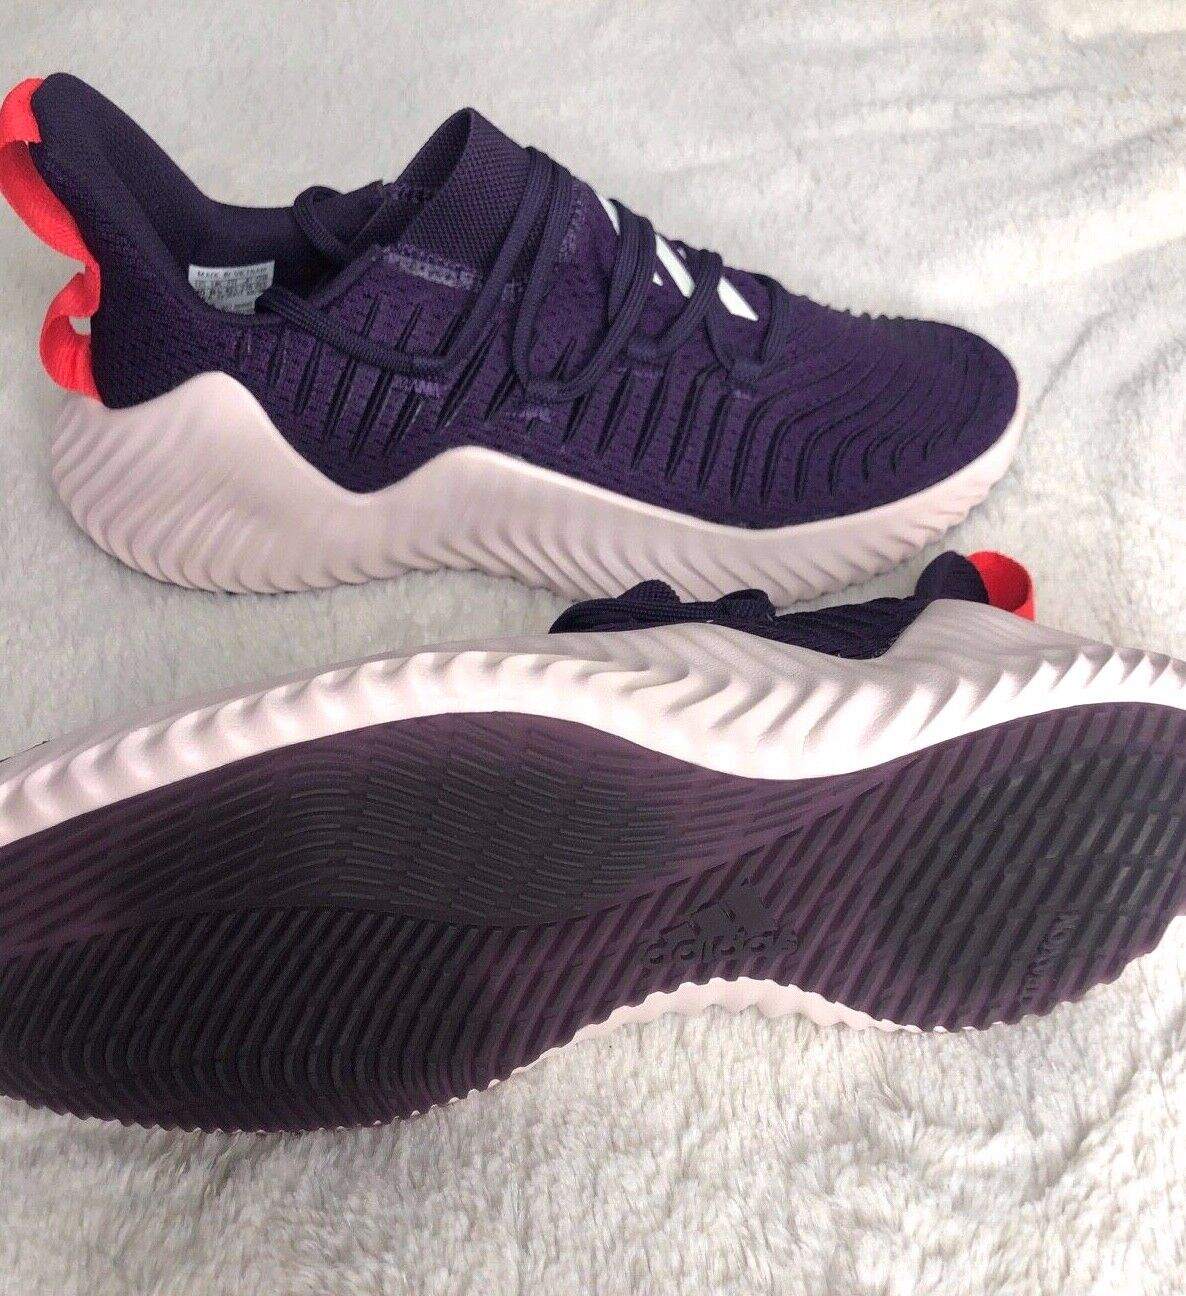 Adidas Women's Alpha Bounce Trainer Gym Shoes Size 10 BB9088